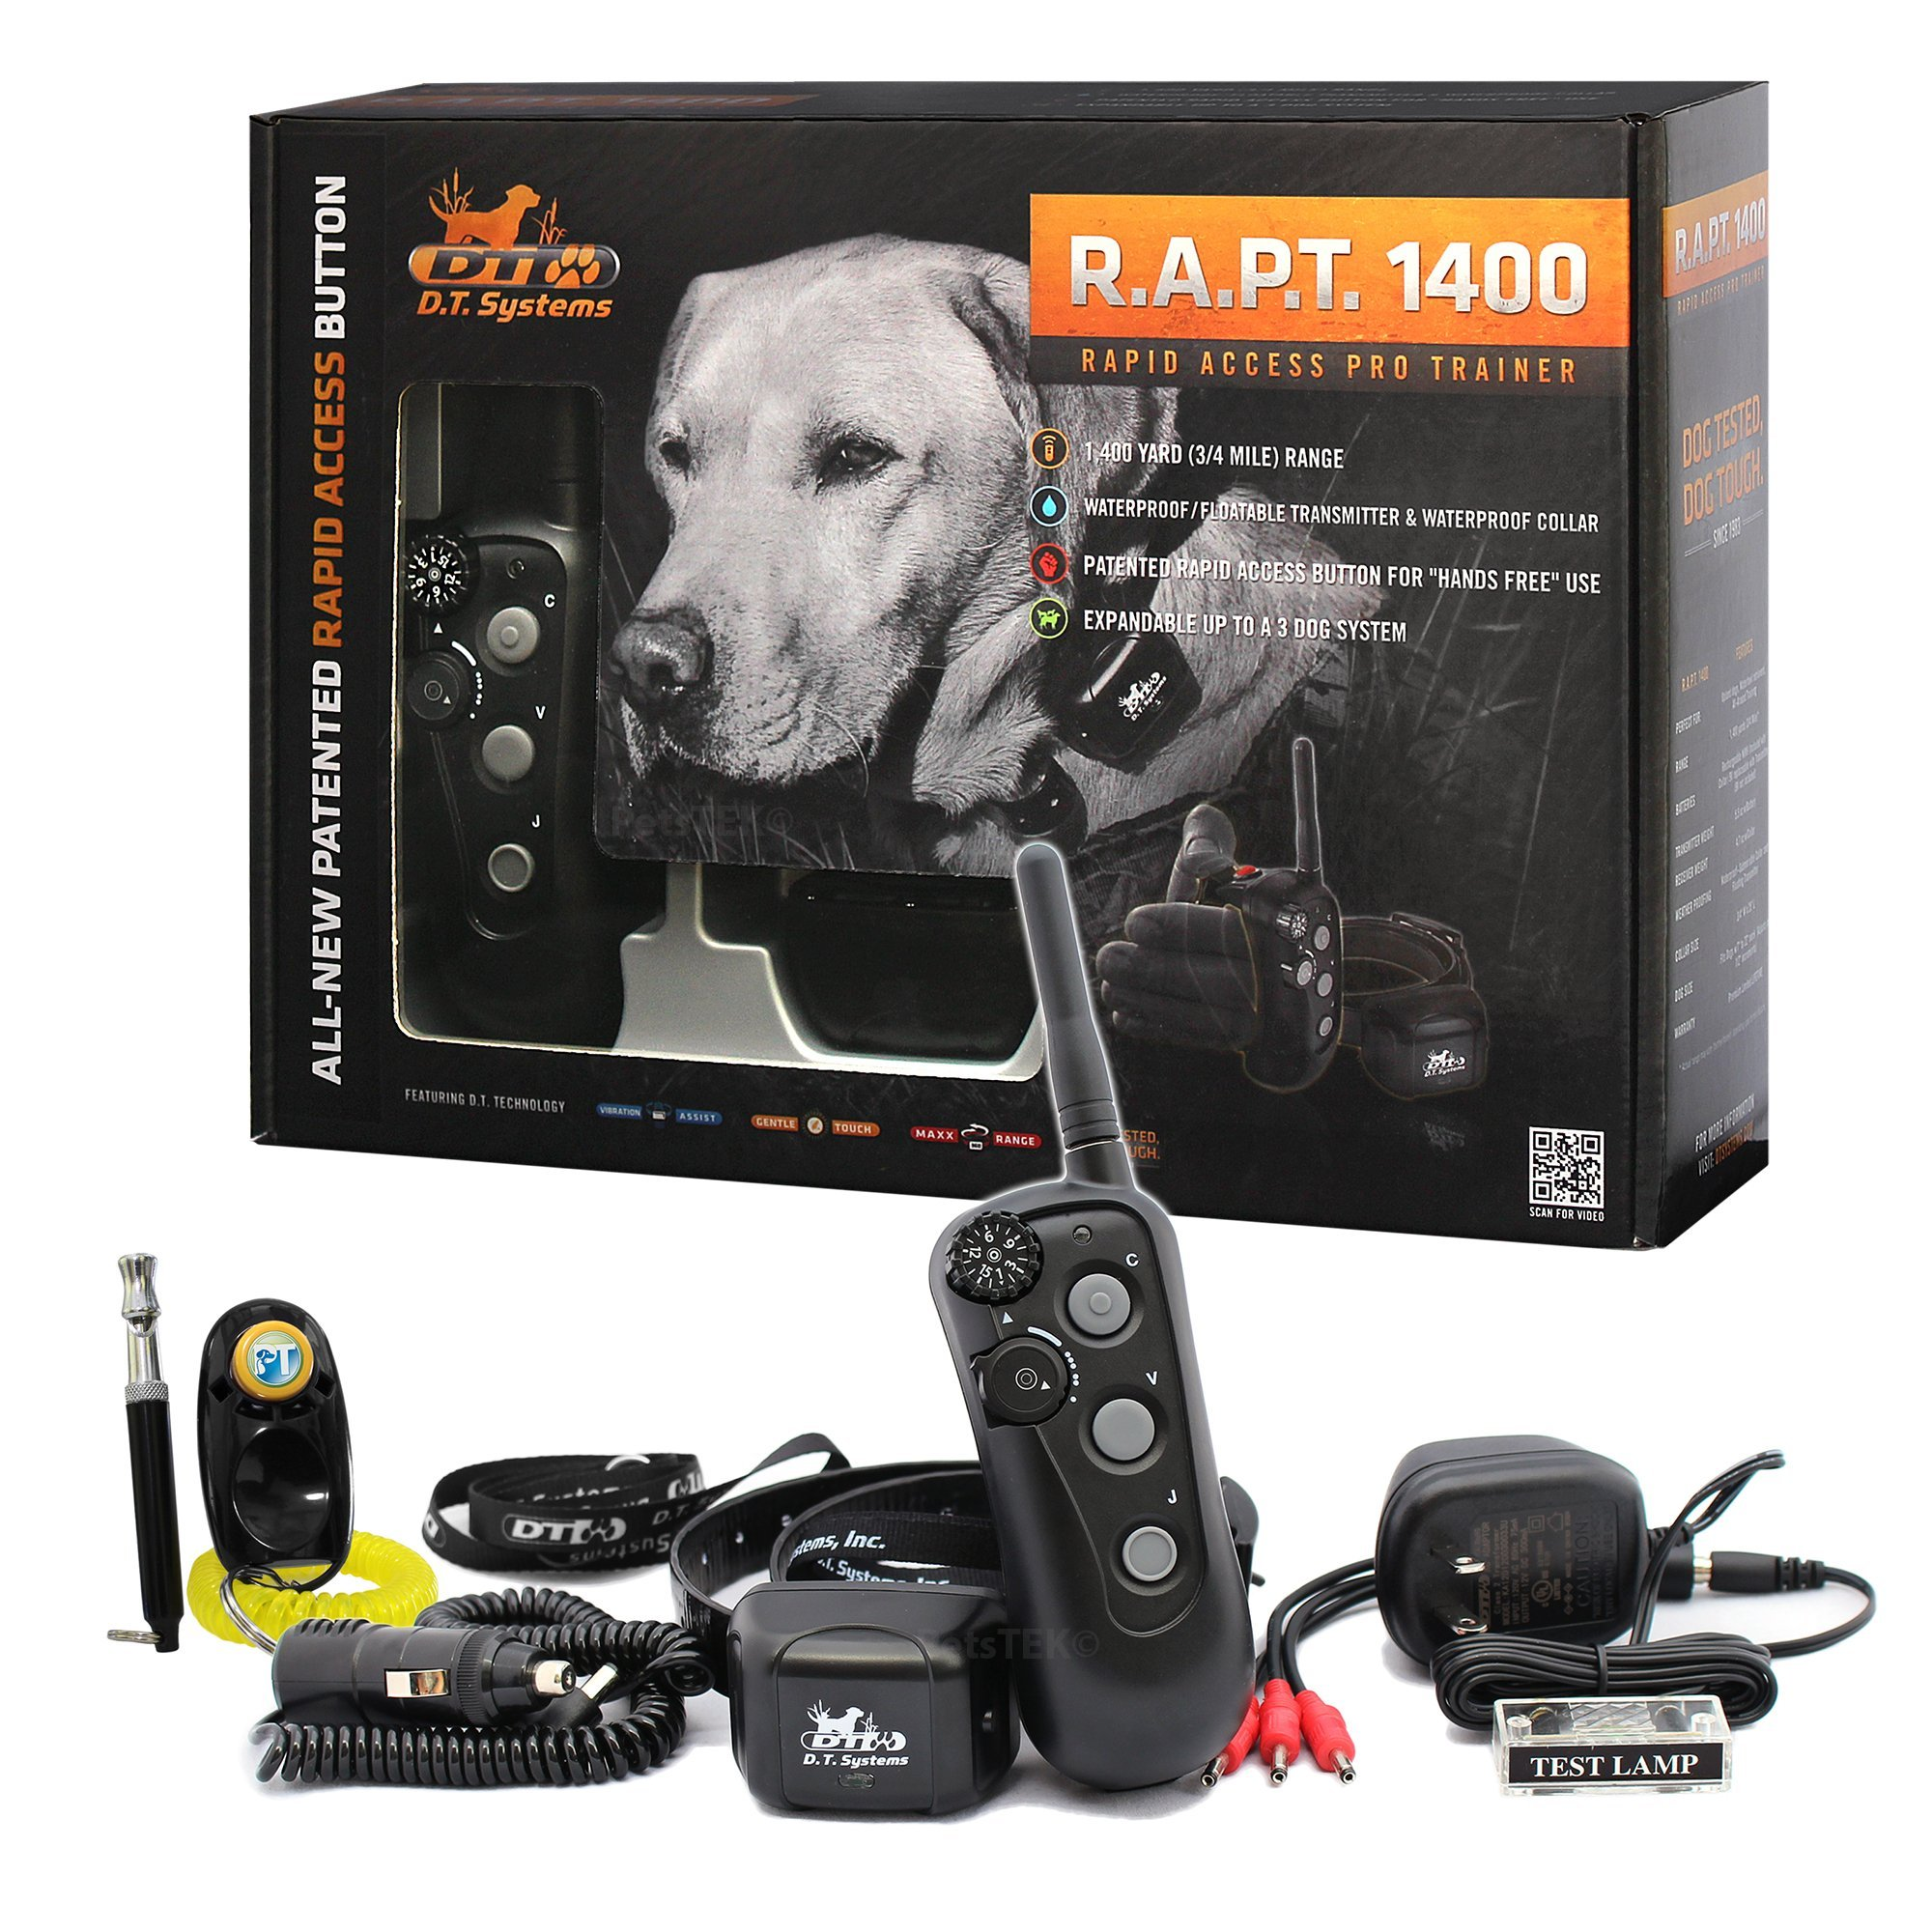 D.T. Systems - R.A.P.T 1400 Series Remote Control Dog Training Electric Shock Collar System with PetsTEK Clicker and Whistle Training Kit by DT Systems